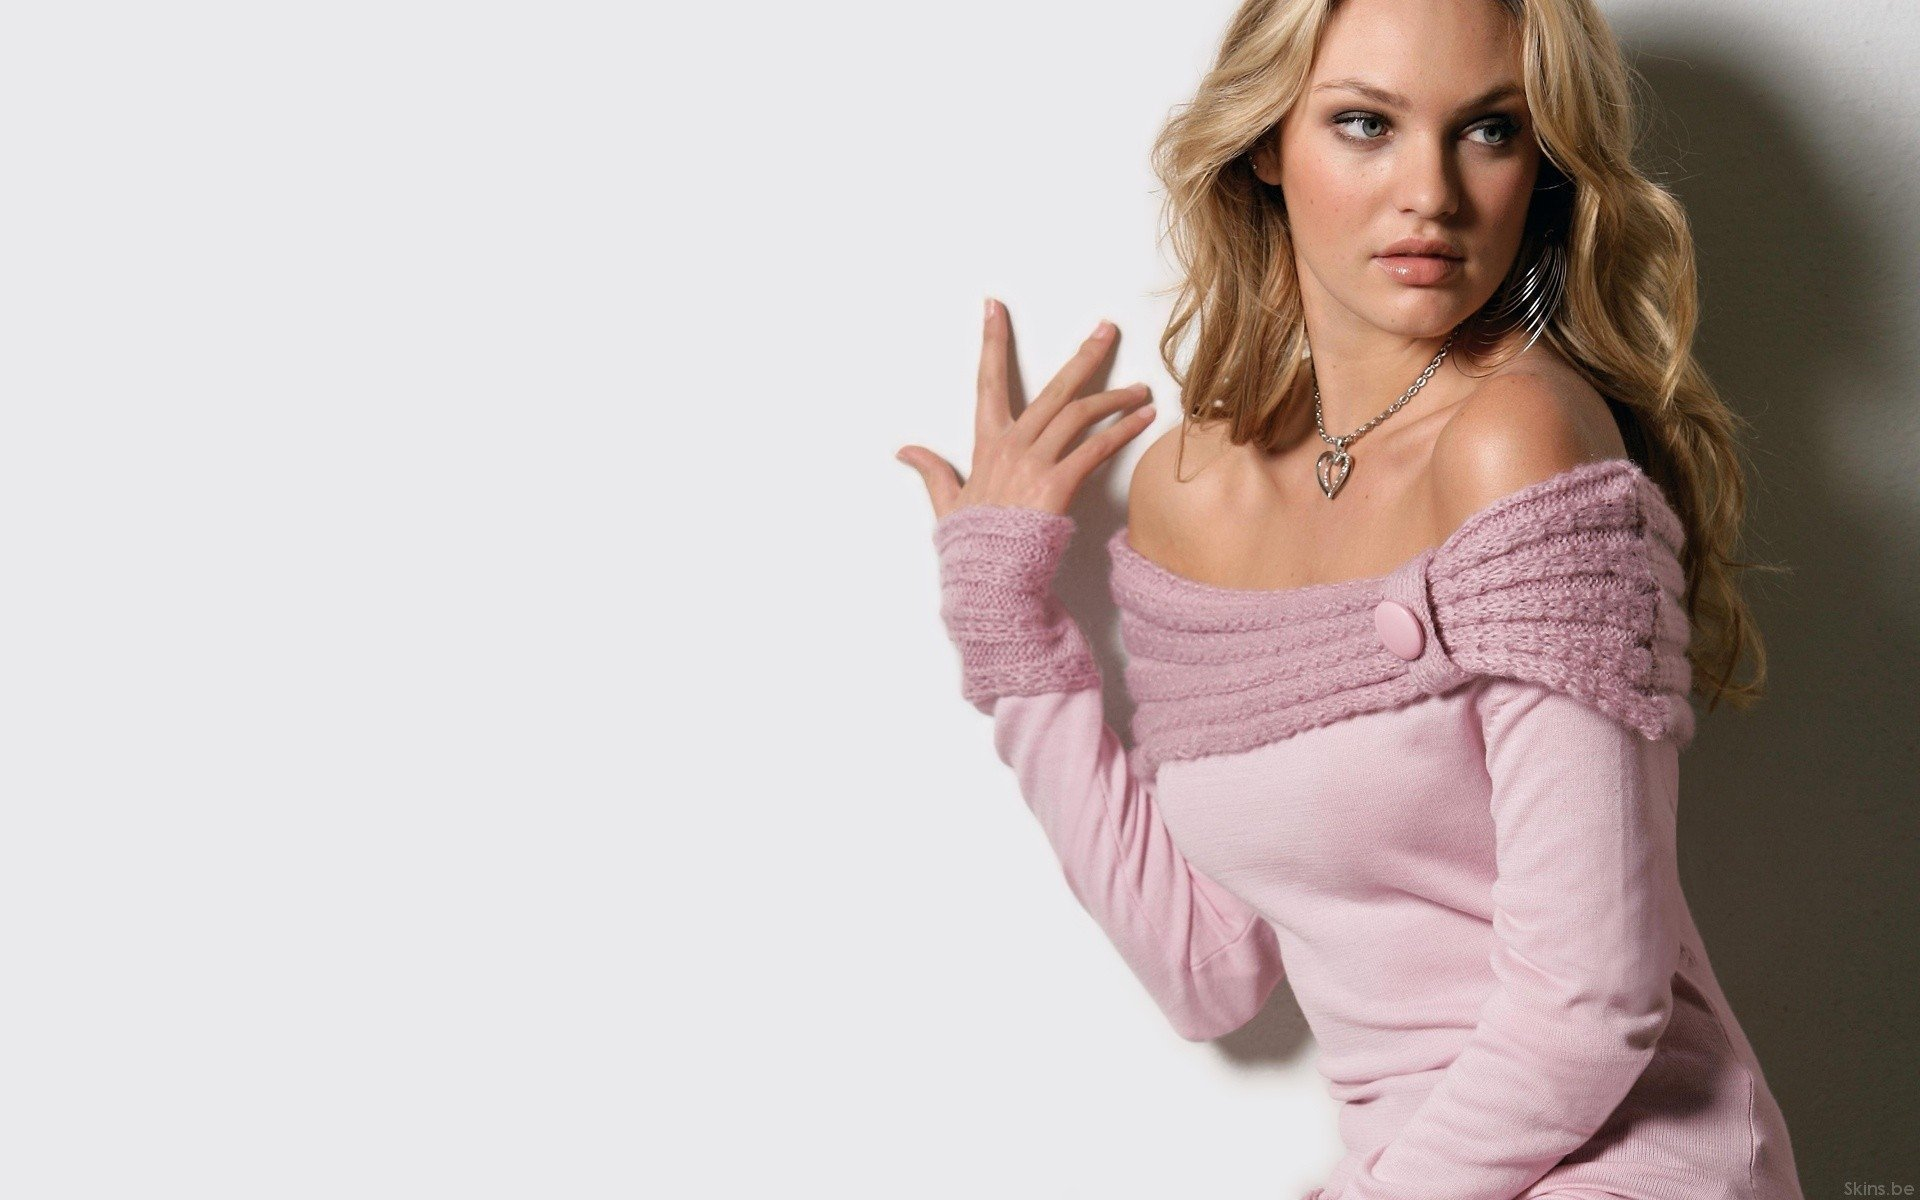 Women - Candice Swanepoel  Wallpaper